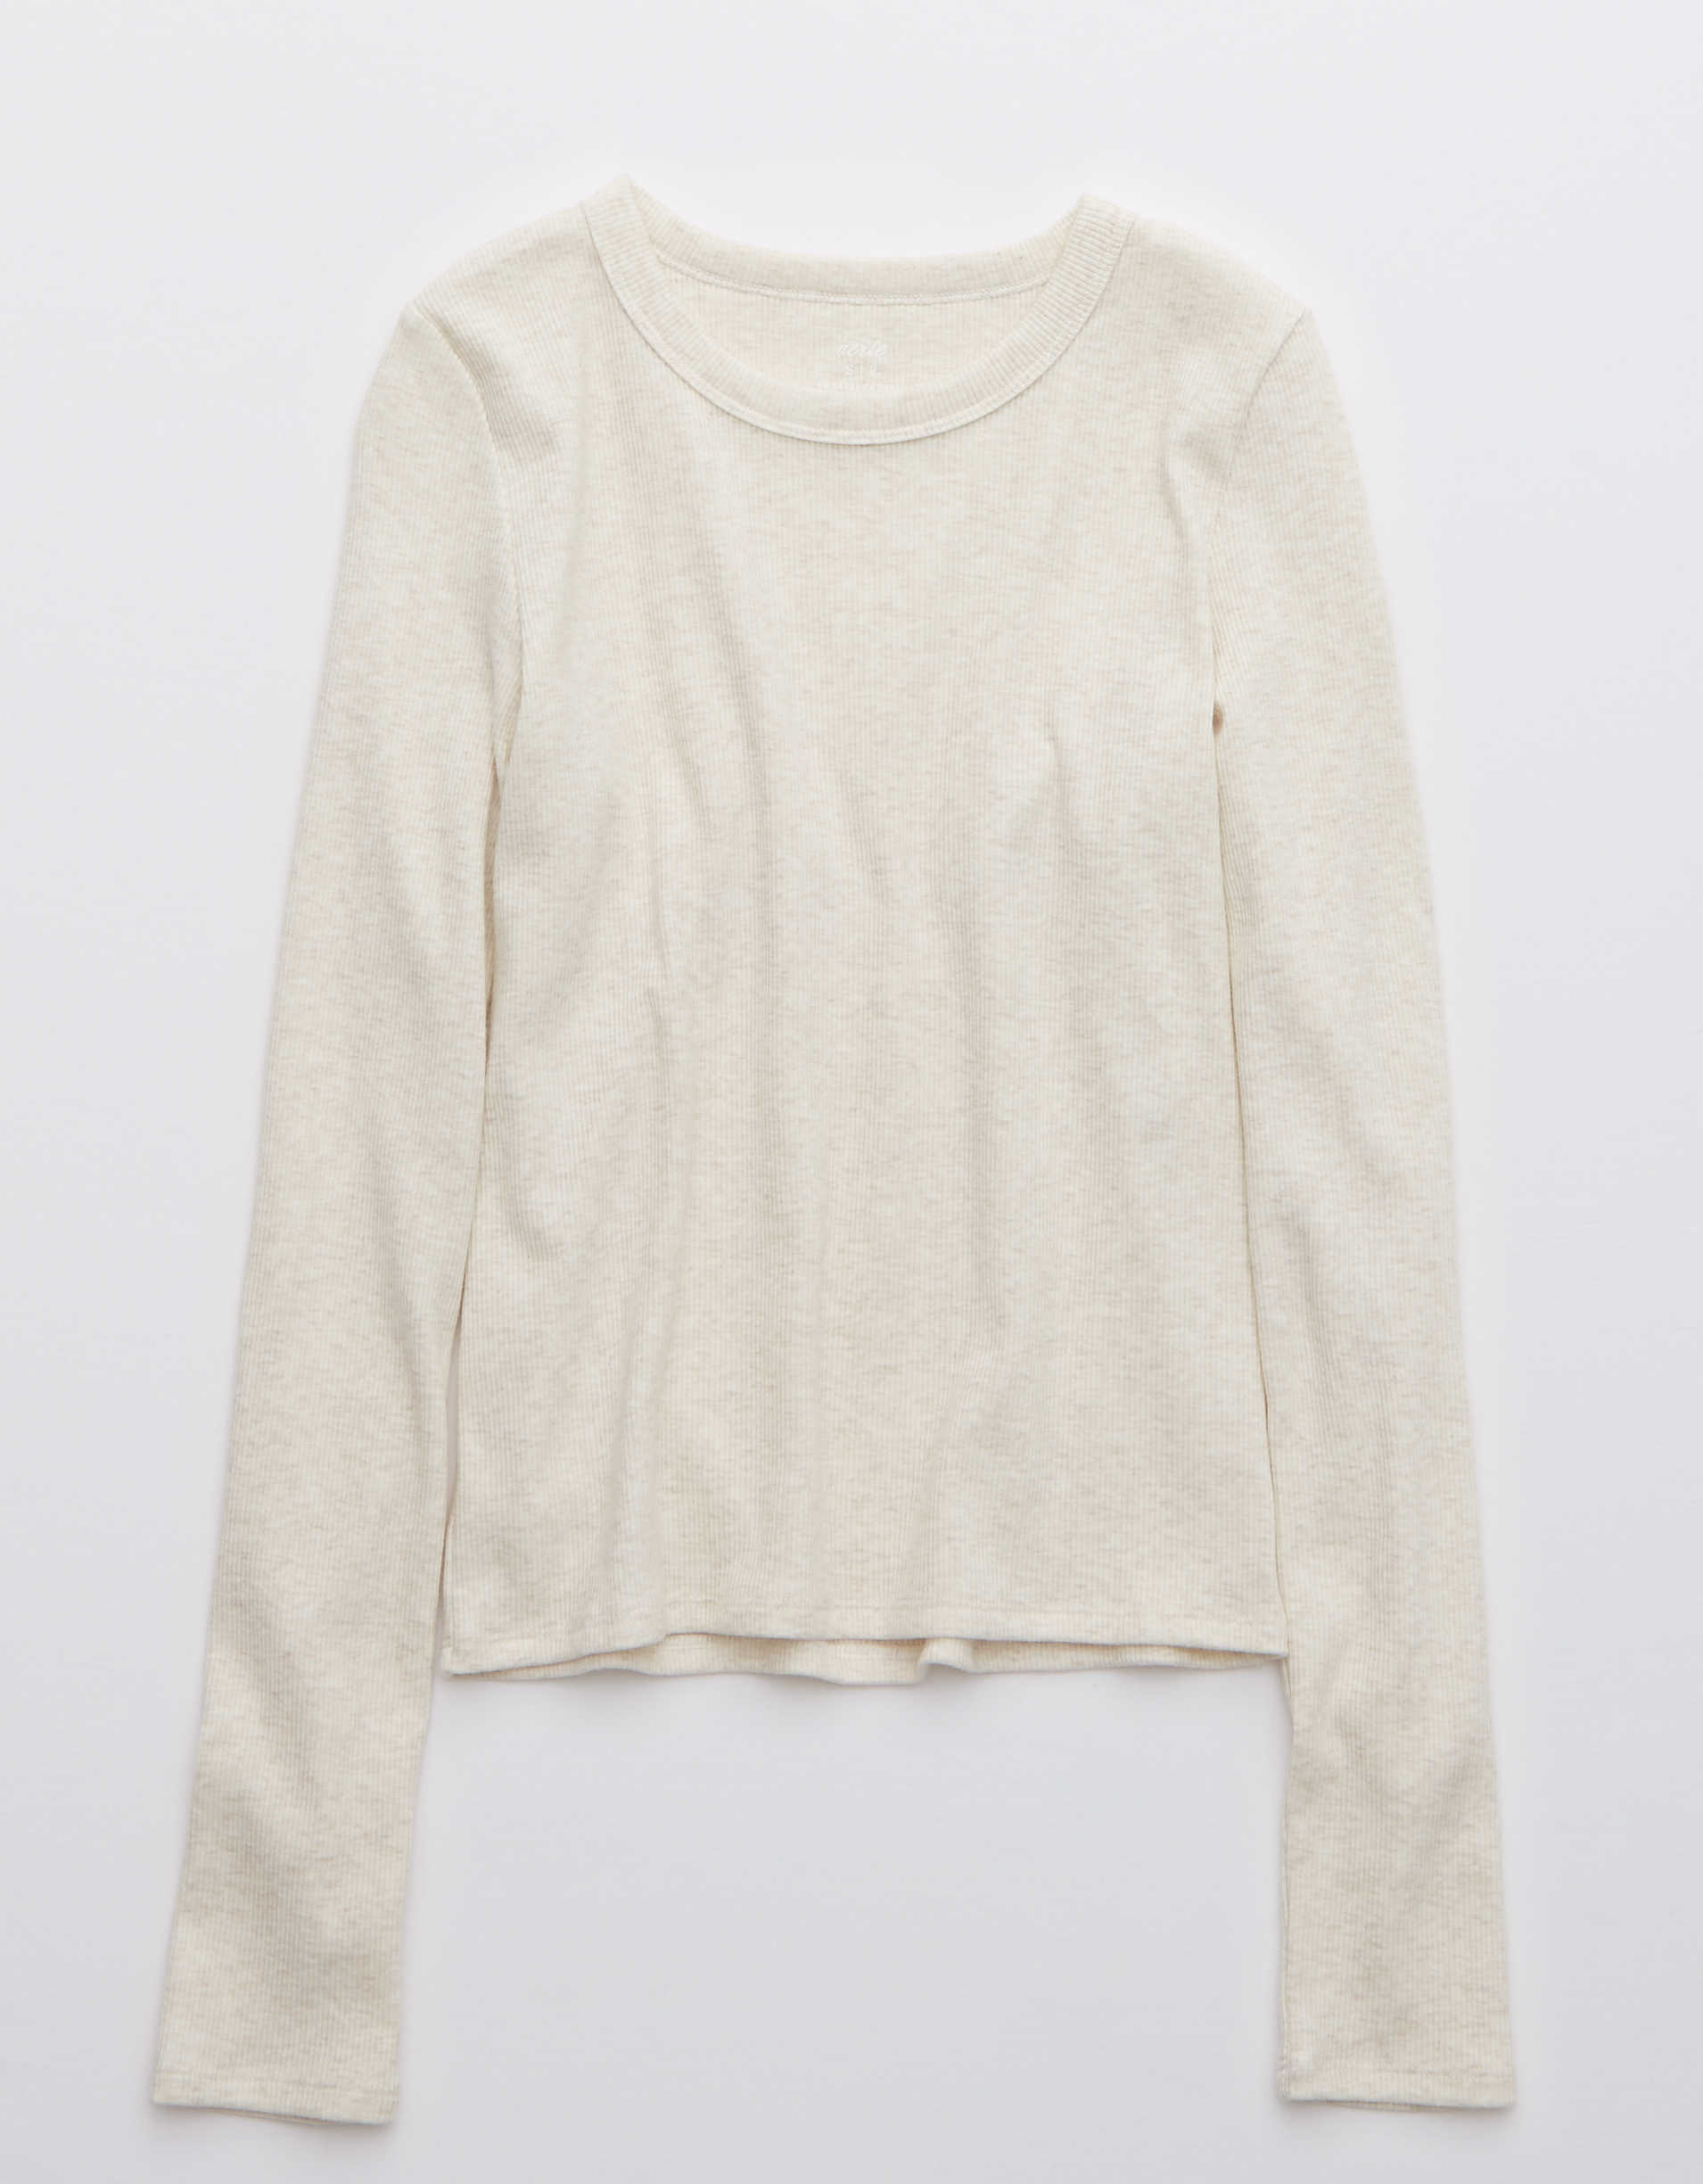 Aerie Ribbed Long Sleeve Cropped T-Shirt